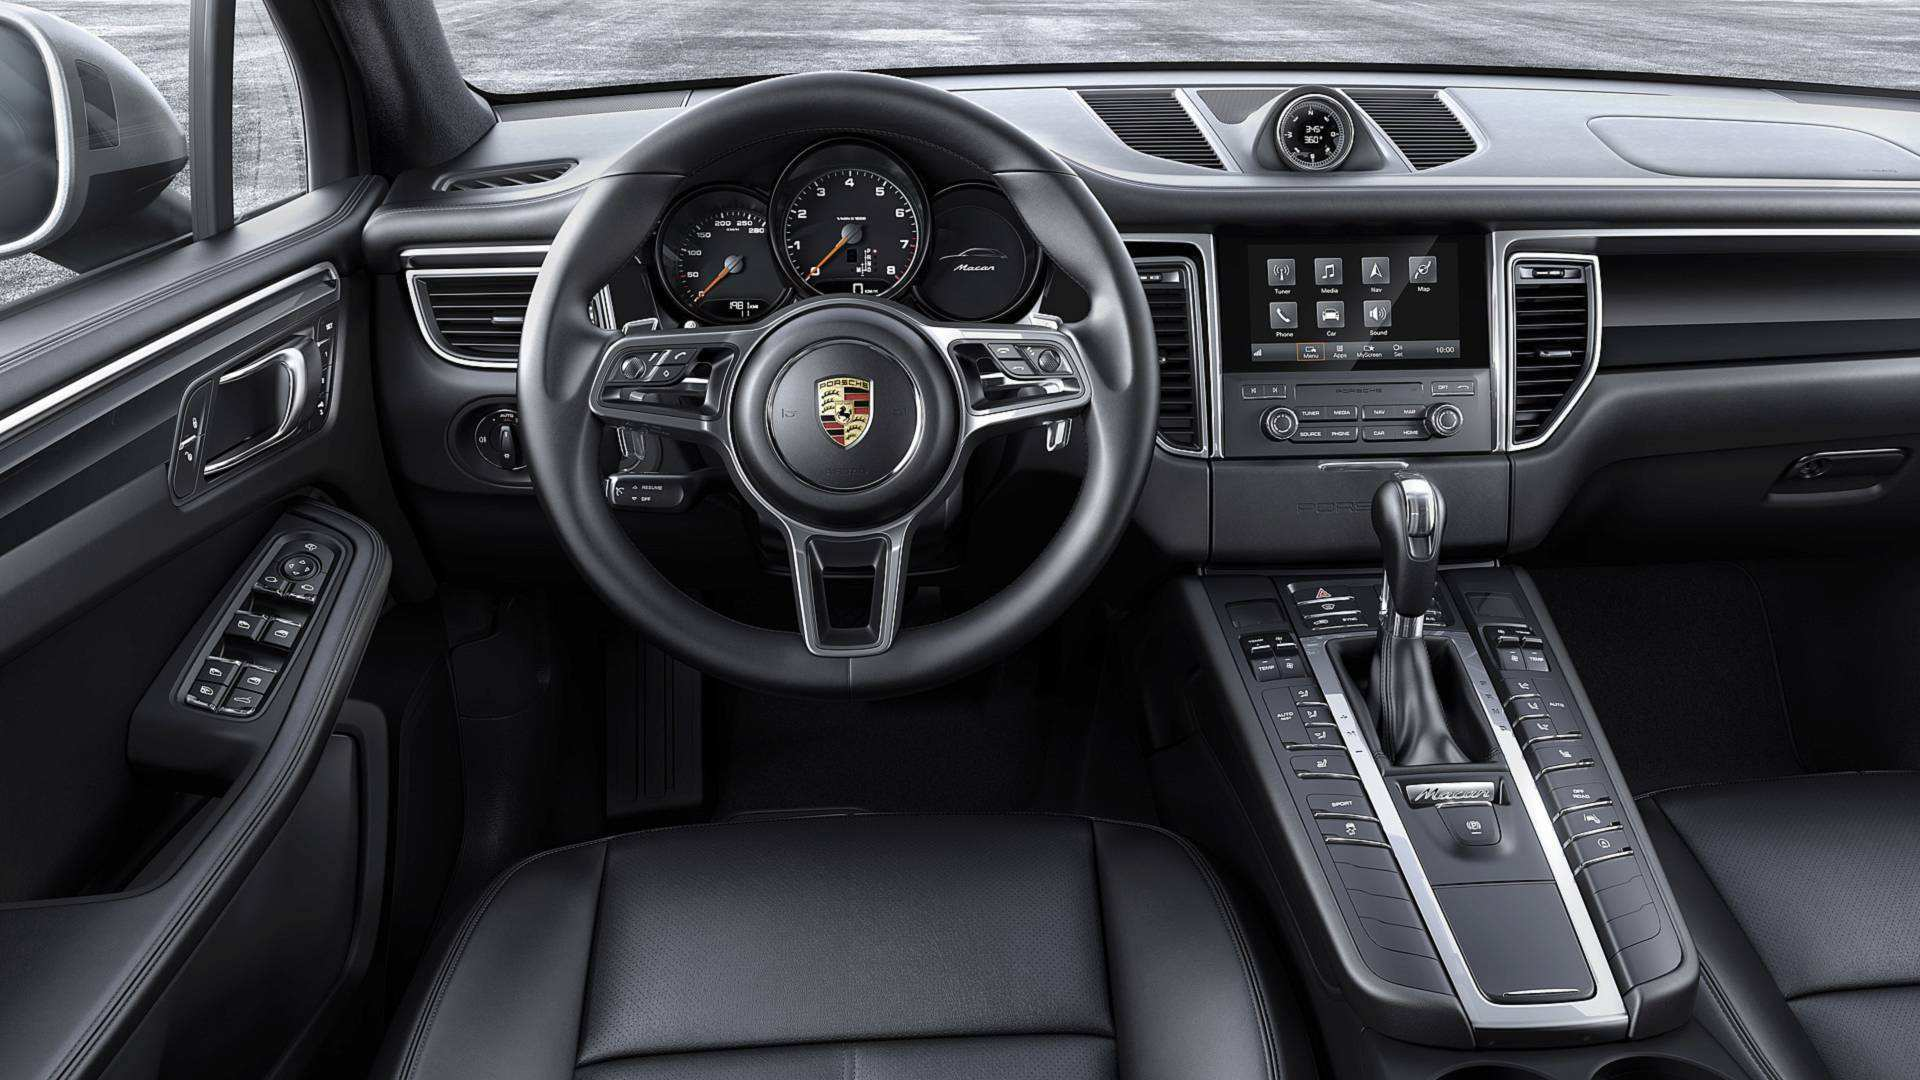 99 A 2019 Porsche Macan Interior Engine